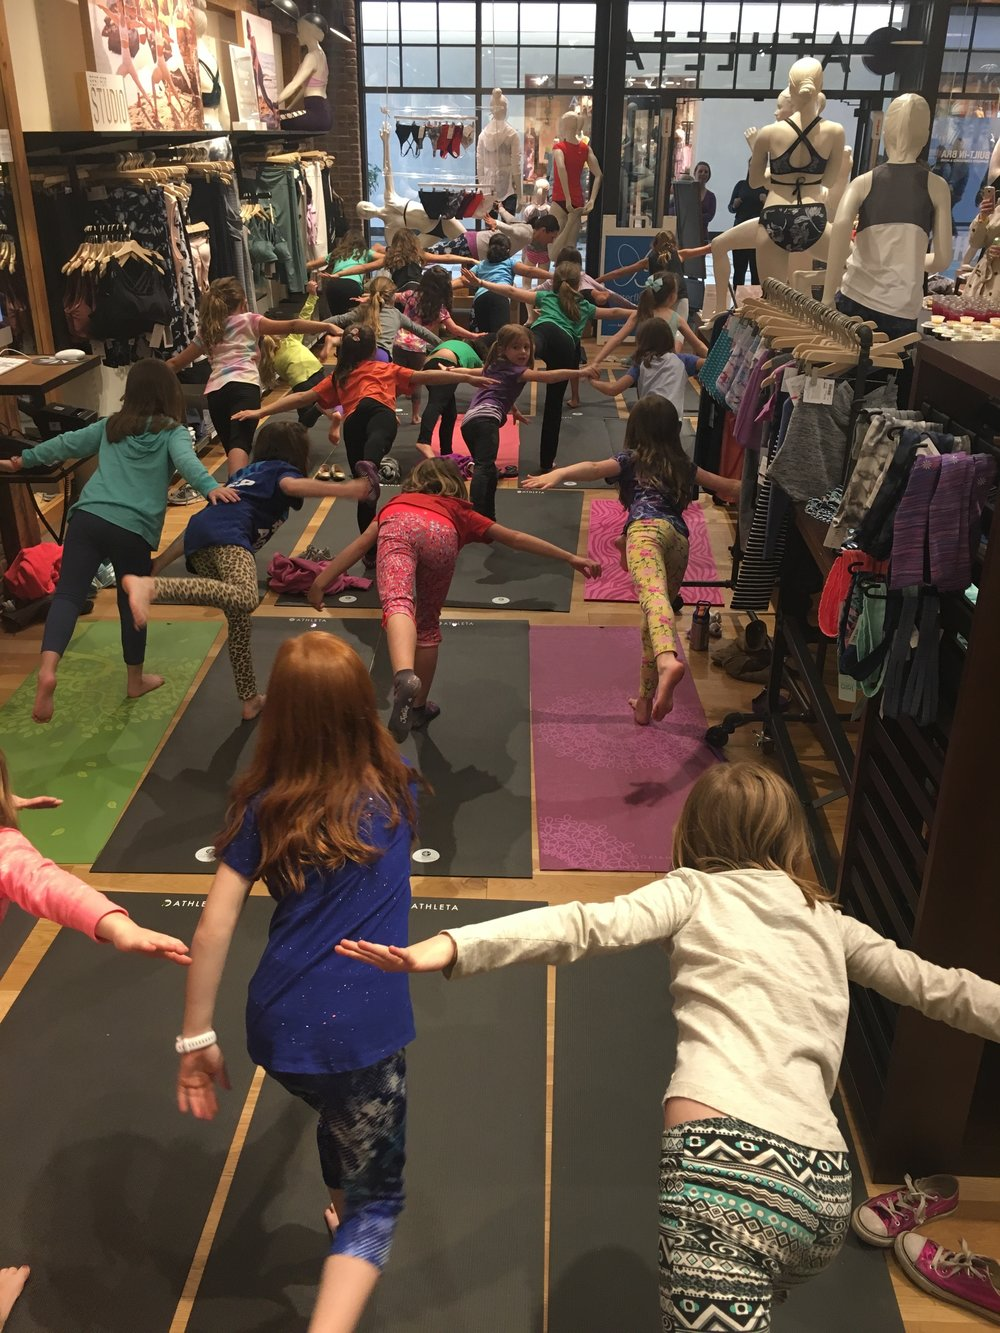 Butterfly Kids Yoga celebrating the new Athleta Girl collection. A packed house!